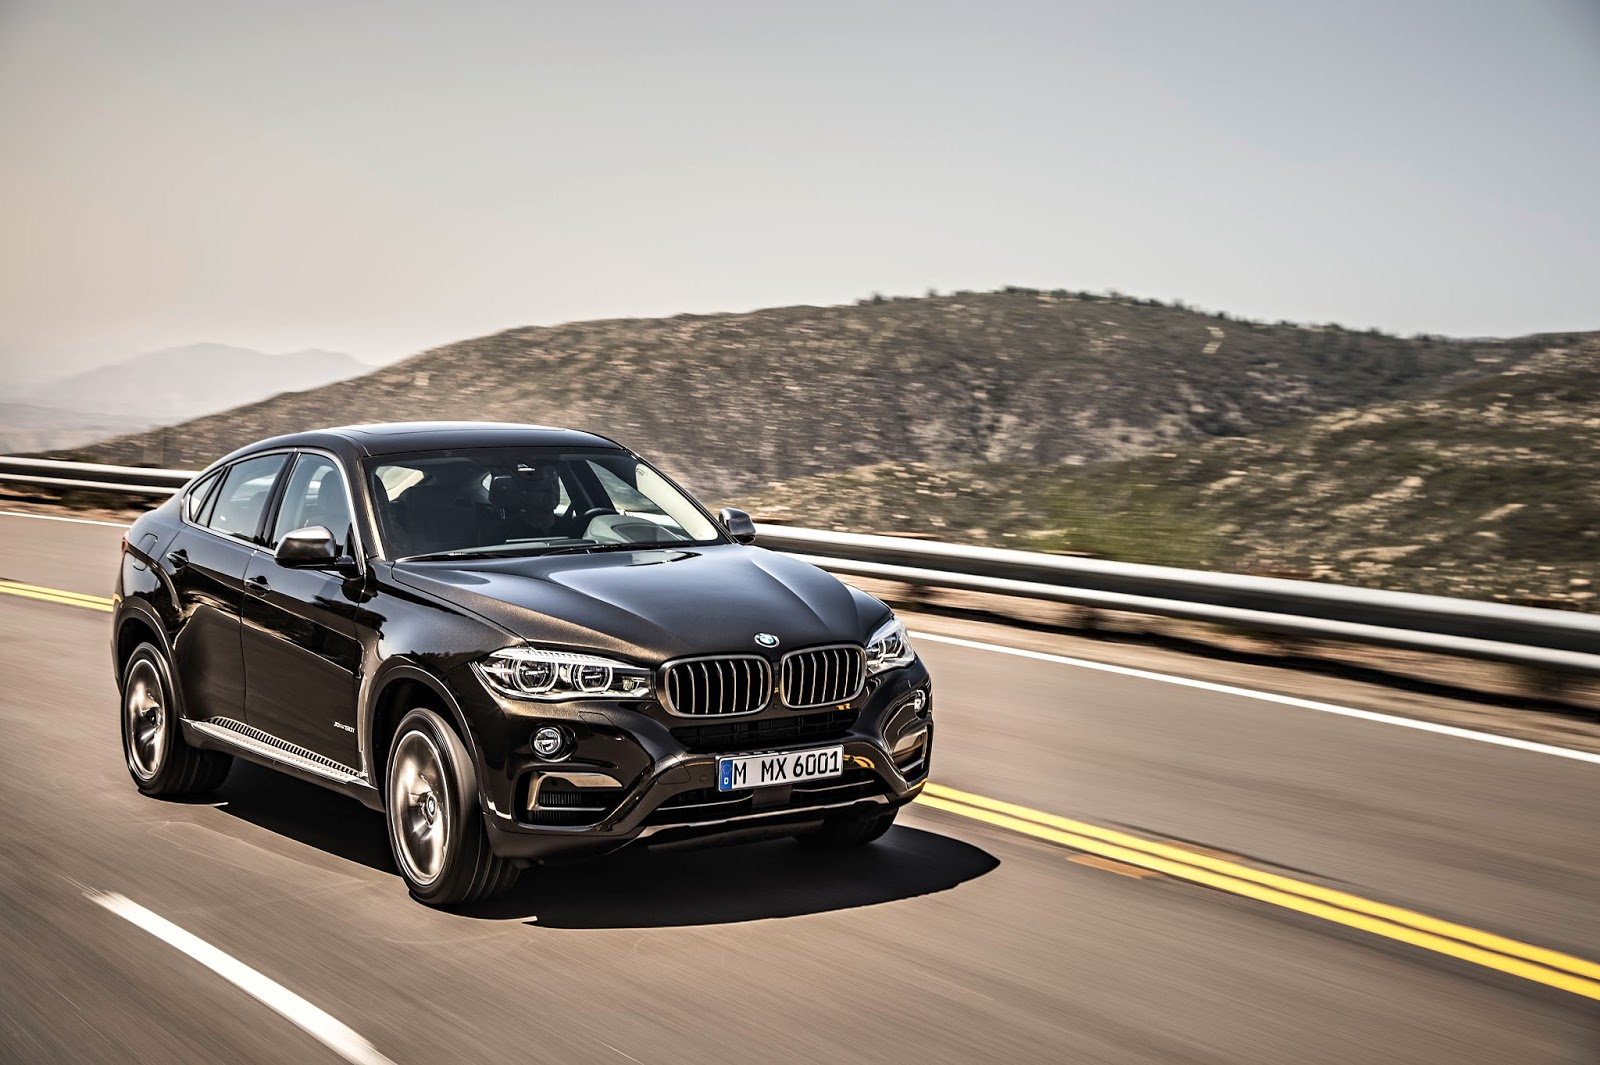 The New Bmw X6 And X6 M50d